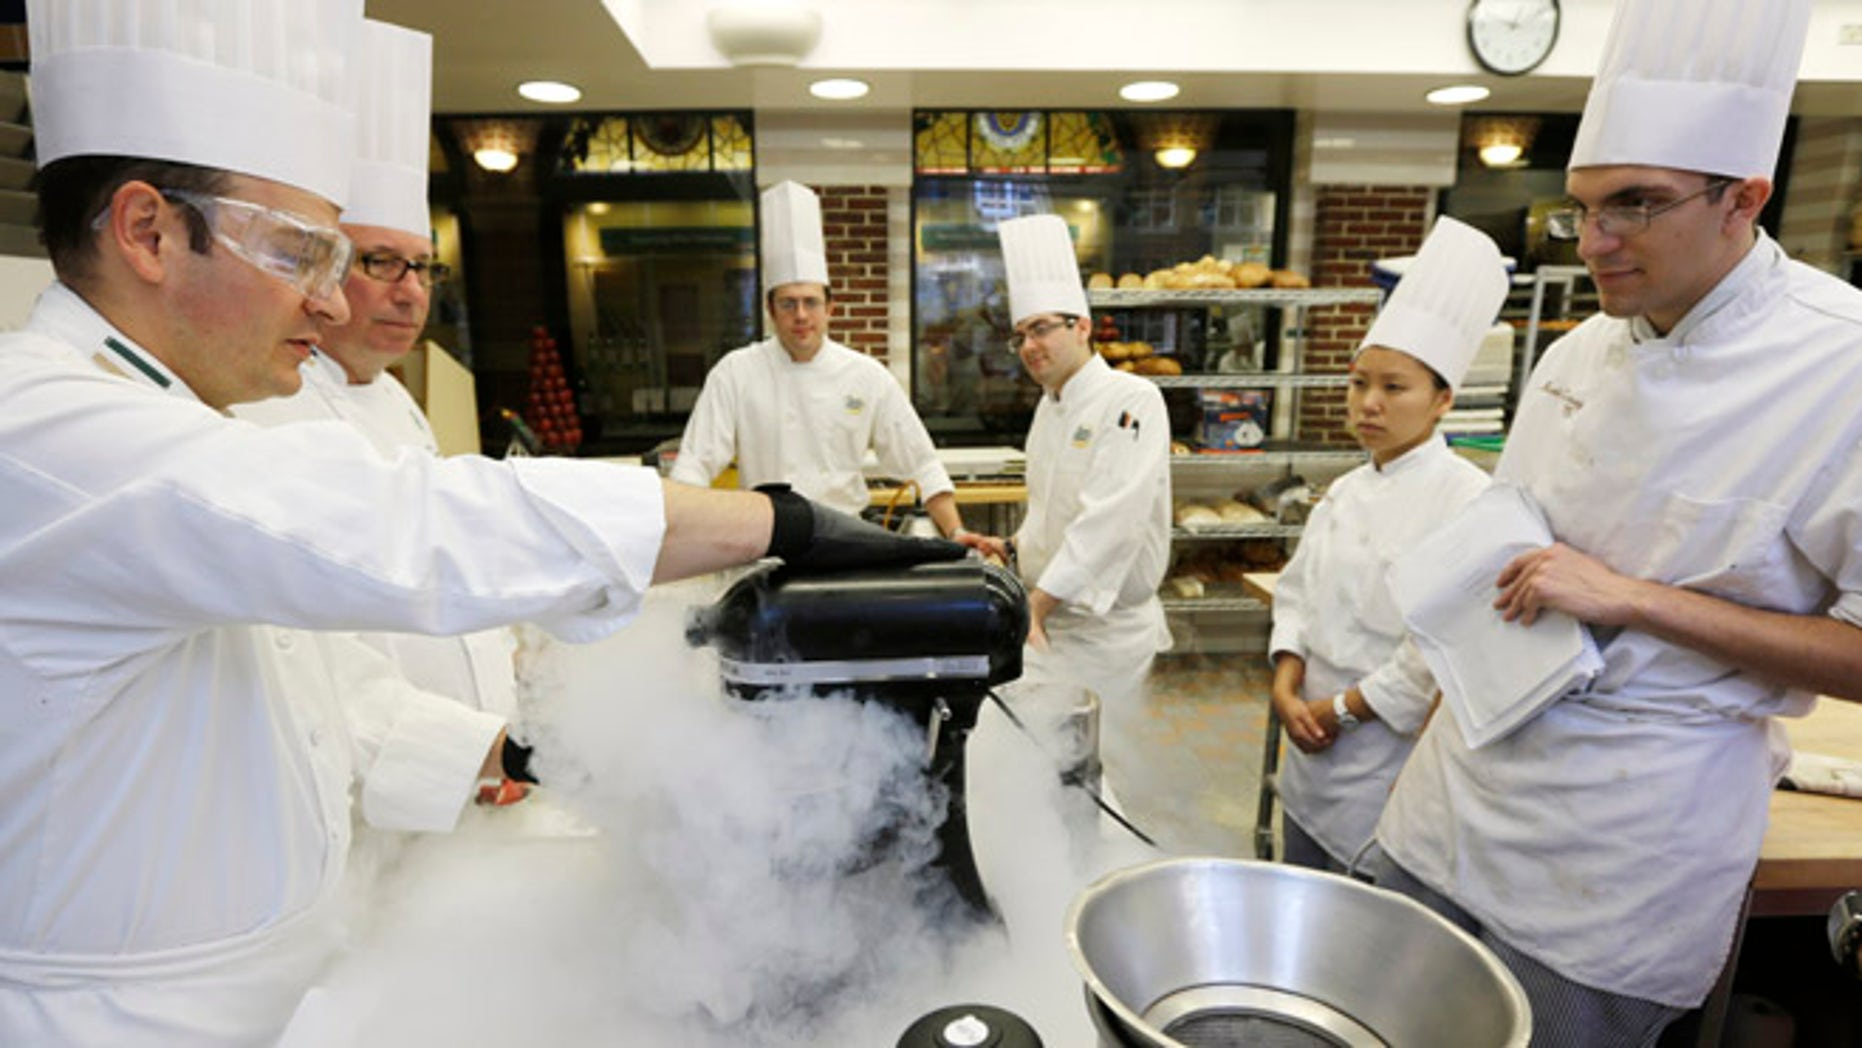 Sept. 14, 2012: Chef Francisco Migoya, left, demonstrates how to make strawberry sorbet by applying liquid nitrogen to a puree mixture.